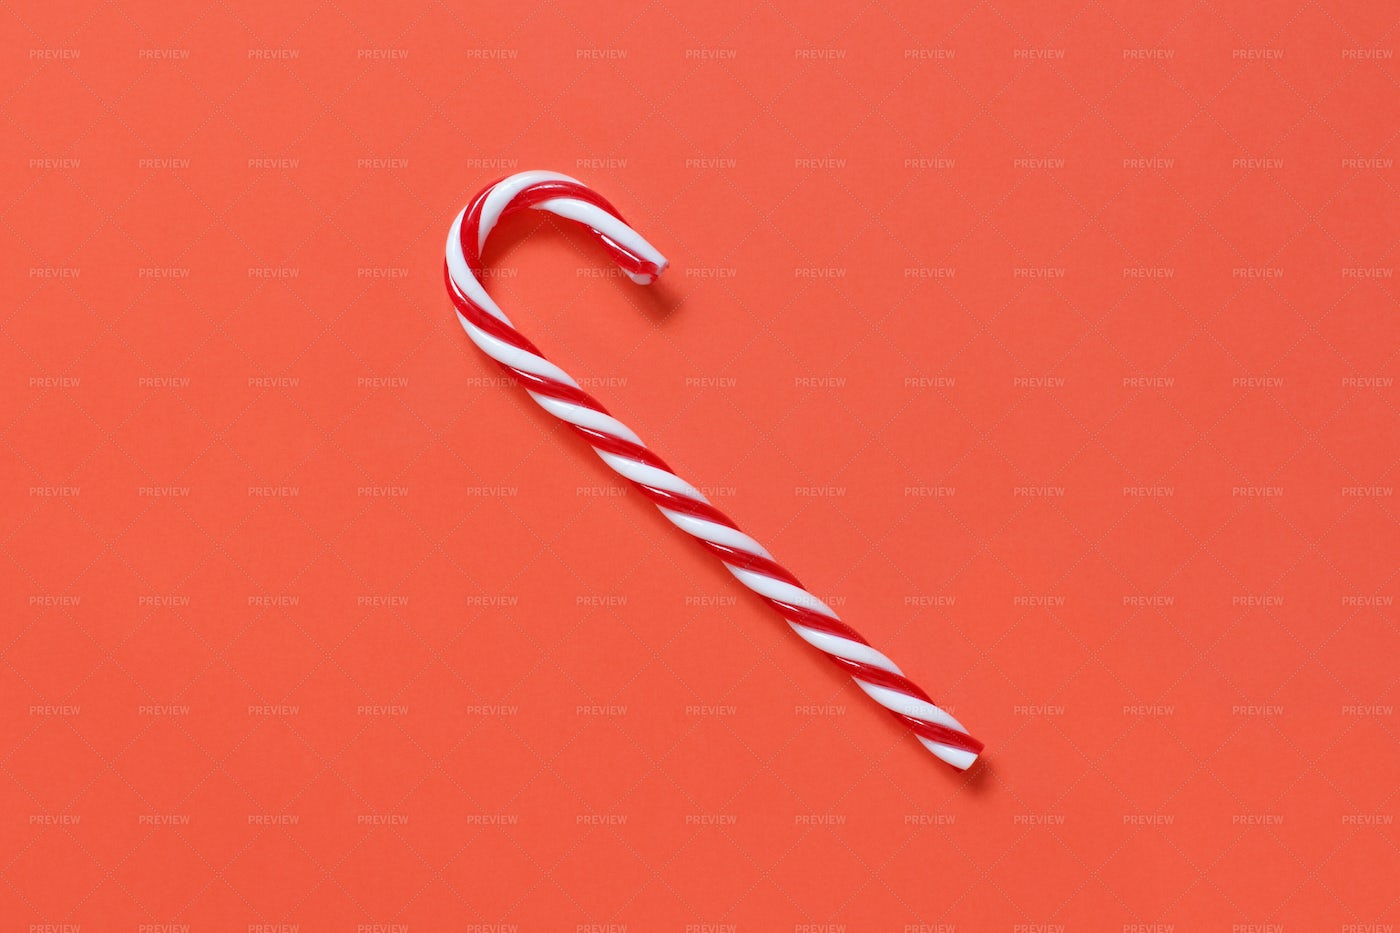 Red And White Christmas Stick: Stock Photos